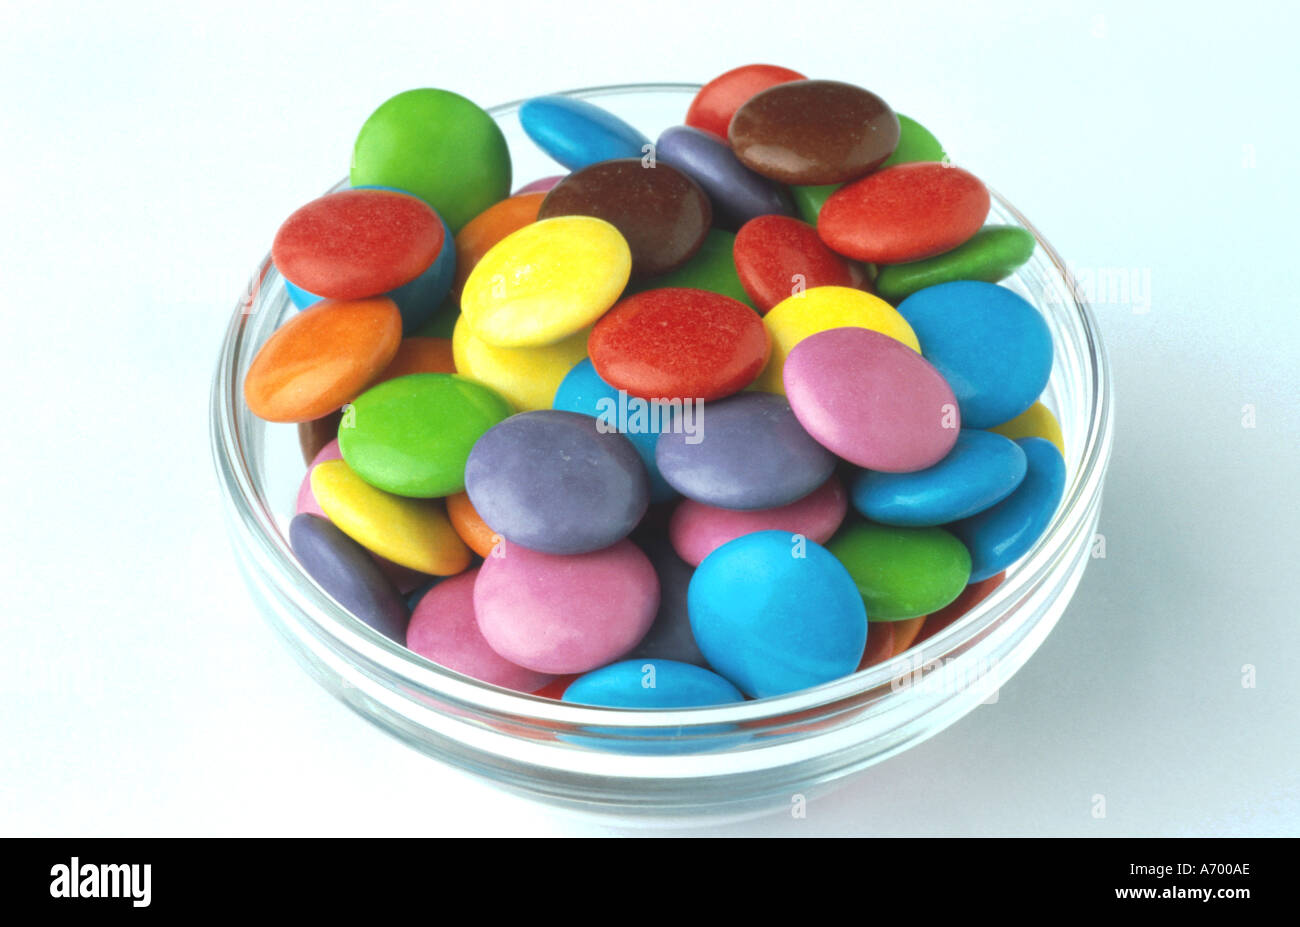 food sweets colored choco drops smarties Stock Photo: 458926 - Alamy